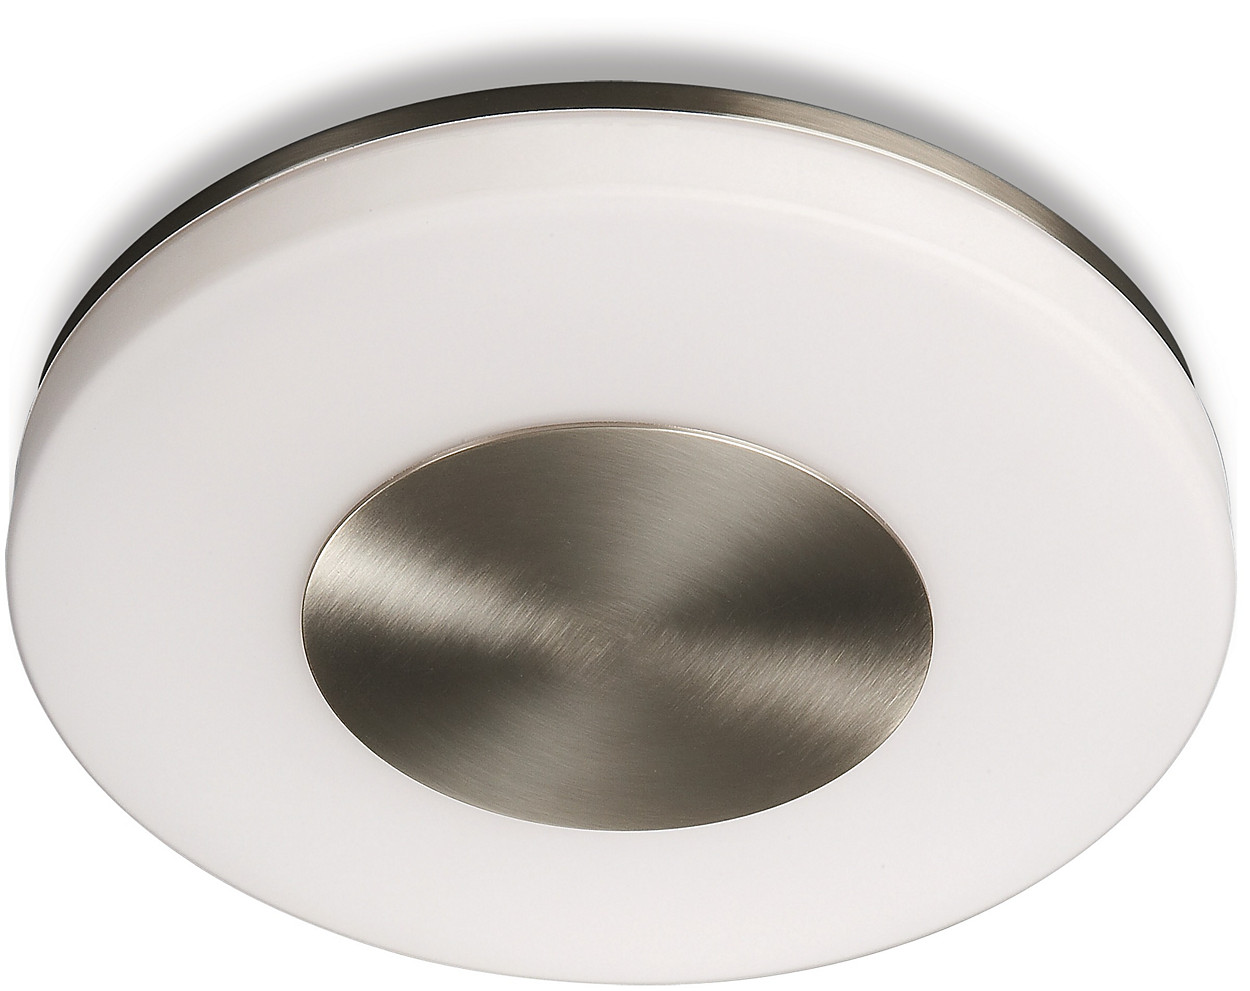 Bathroom Ceiling Lights Philips : Ceiling light philips